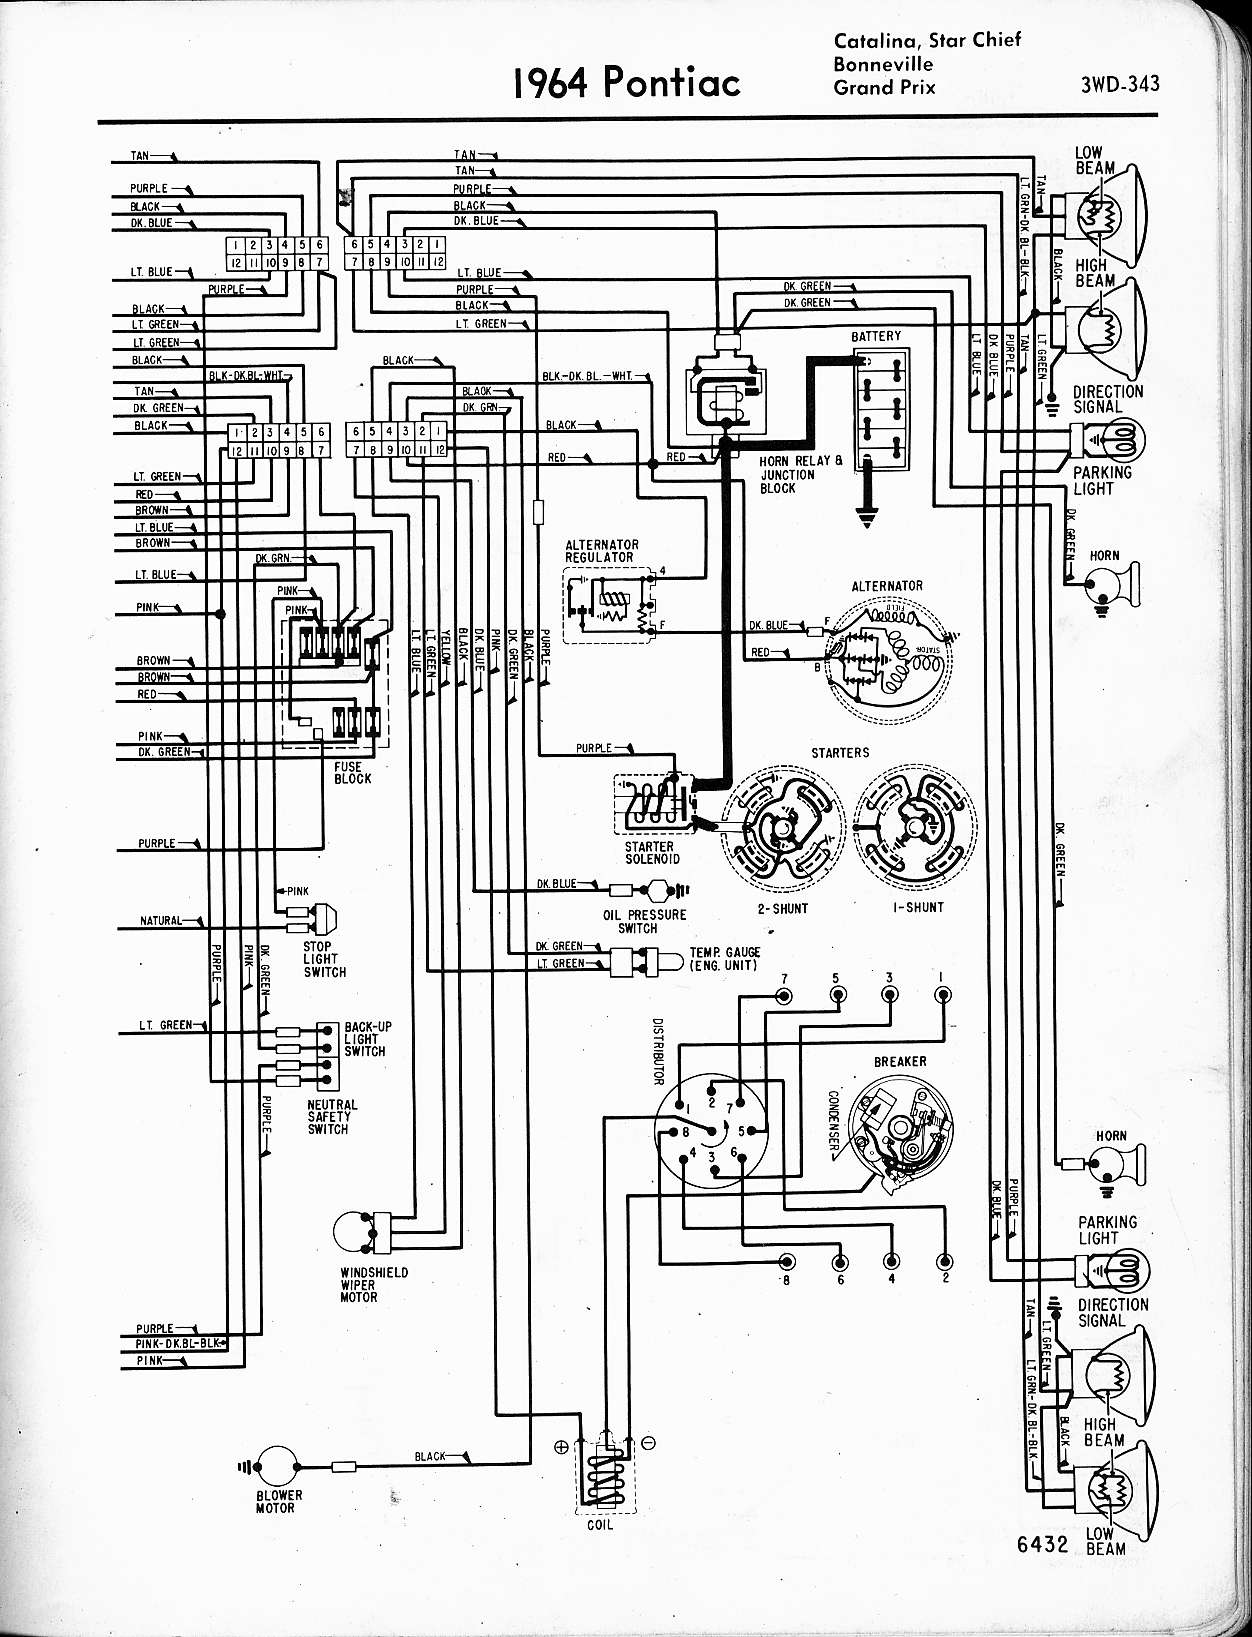 pontiac wiring harness diagram circuit connection diagram u2022 rh mytechsupport us 99 Pontiac Grand Prix Wiring-Diagram 2000 Pontiac Grand AM Wiring Diagram